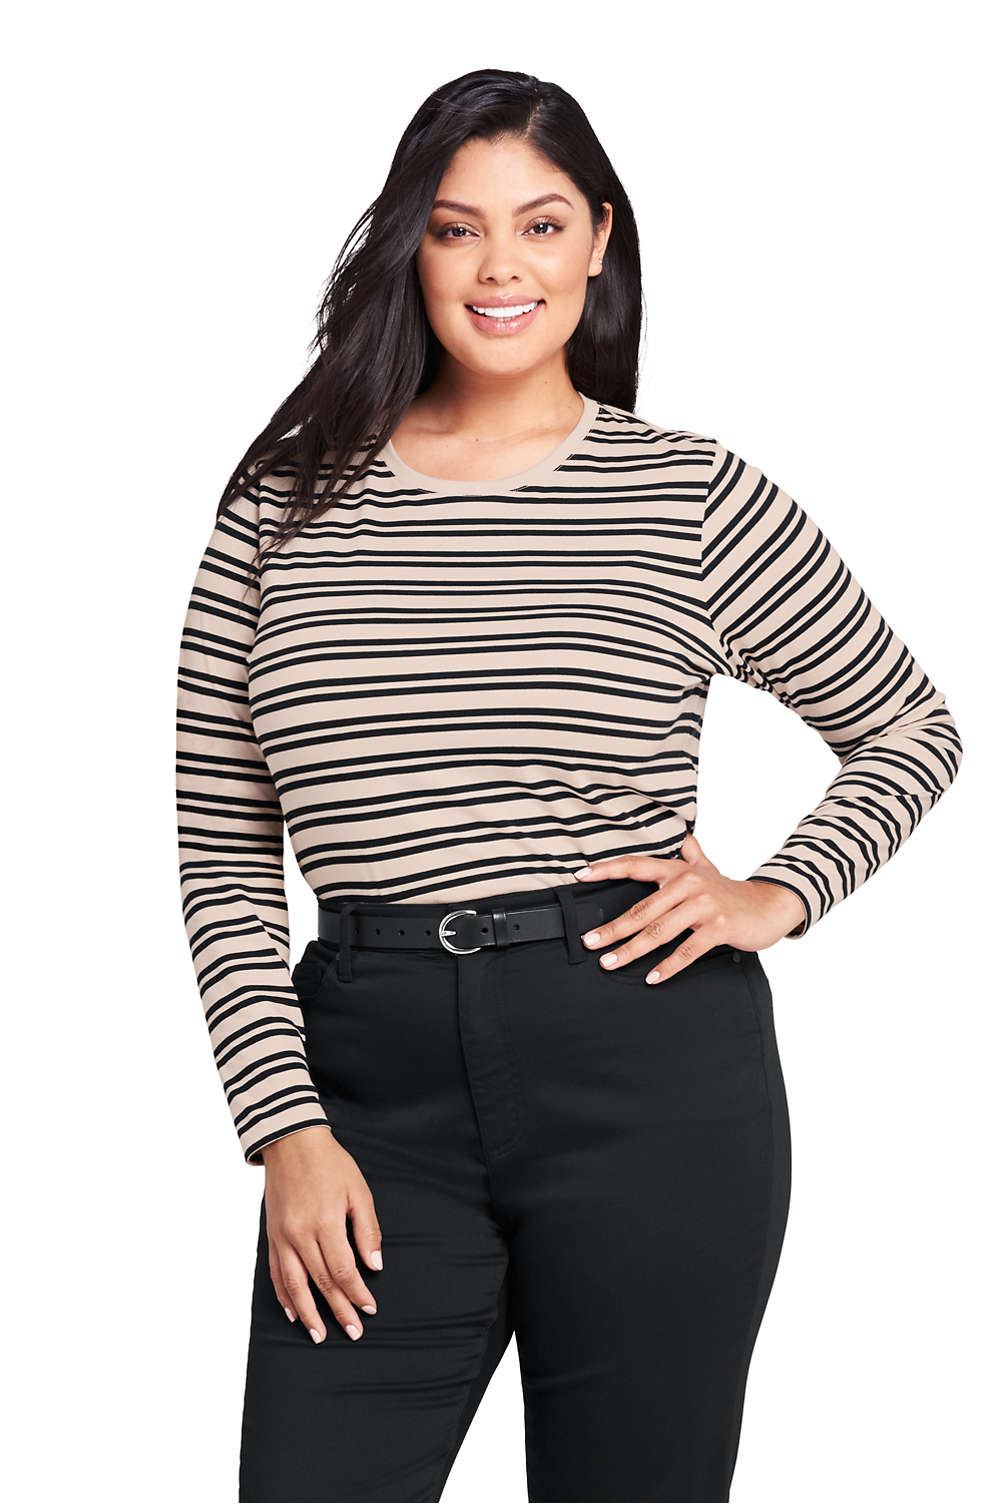 cf598be21384 Women's Plus Size Supima Cotton Long Sleeve T-shirt - Relaxed Crewneck  Stripe